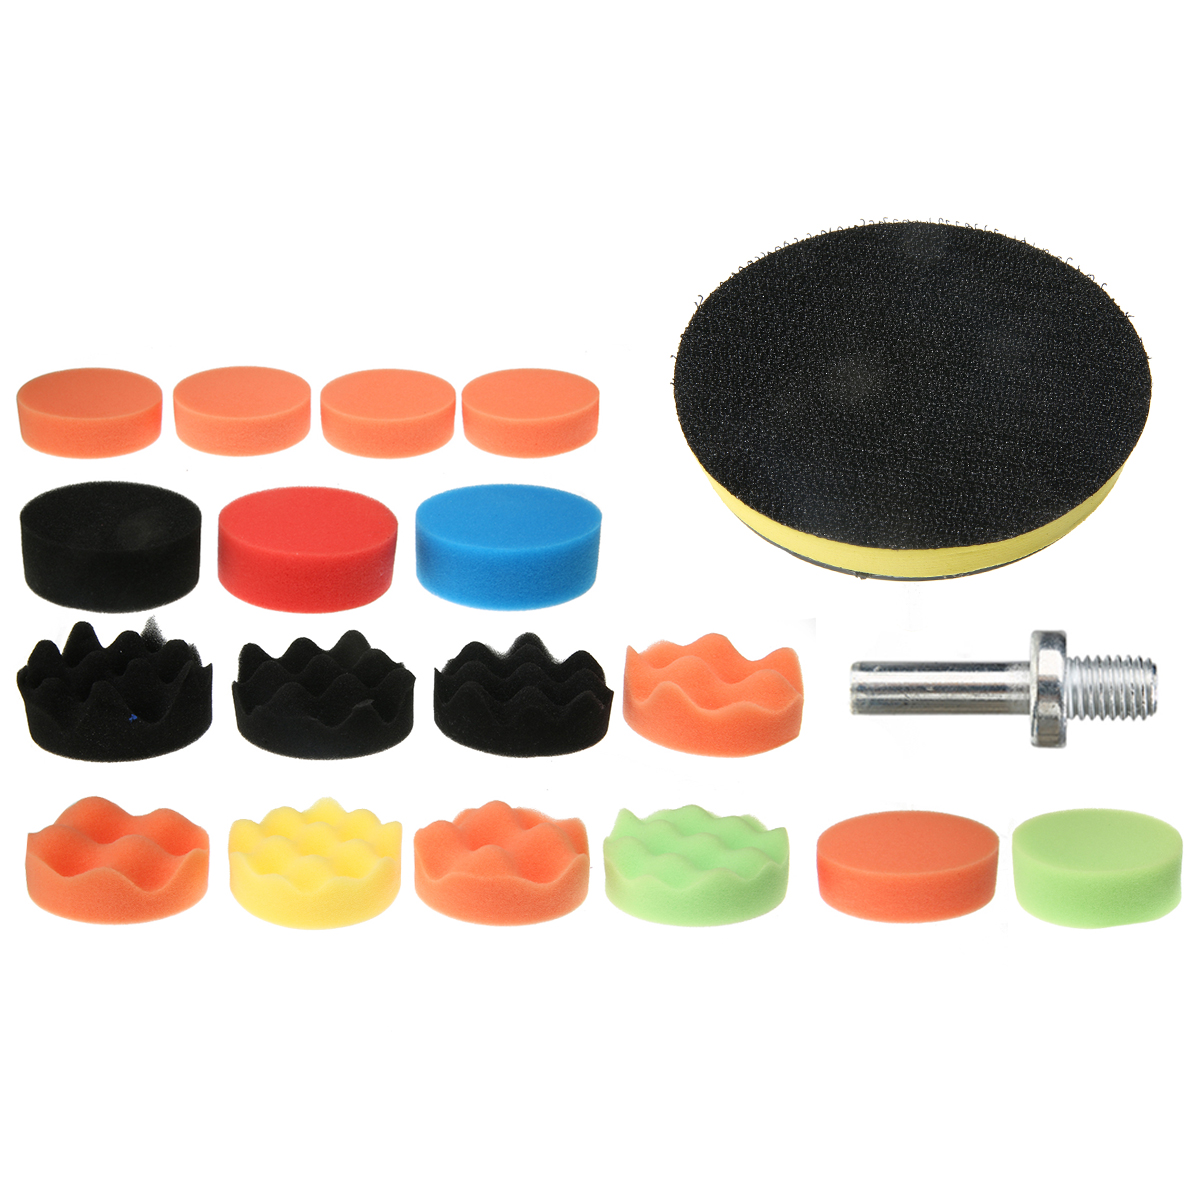 18Pcs 3'' Polishing Sponge Polishing Attachment Drill Polishing Pad Set For Car Polisher Sponge Pad + Polishing Wheel